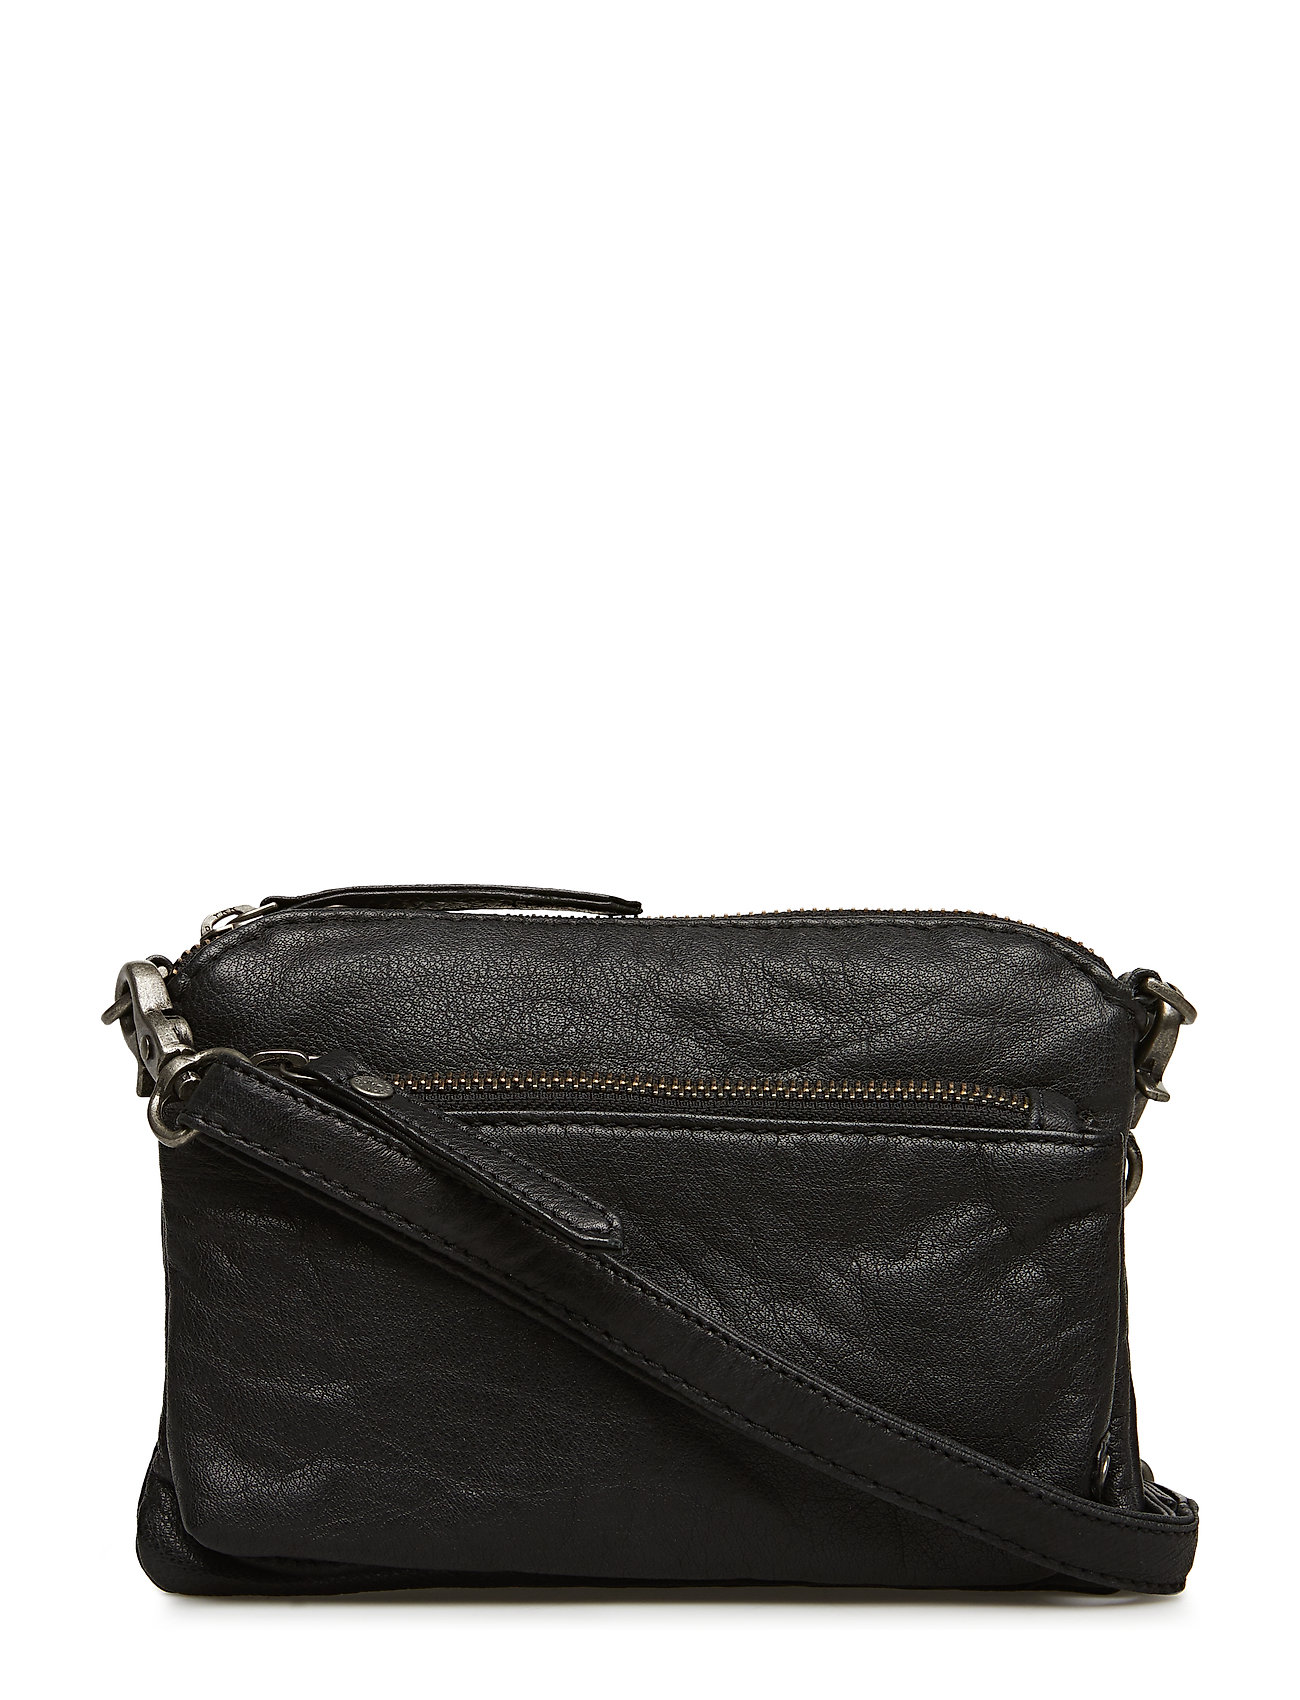 Image of Casual Chic Small Bag / Clutch Bags Small Shoulder Bags/crossbody Bags Sort DEPECHE (2776338725)